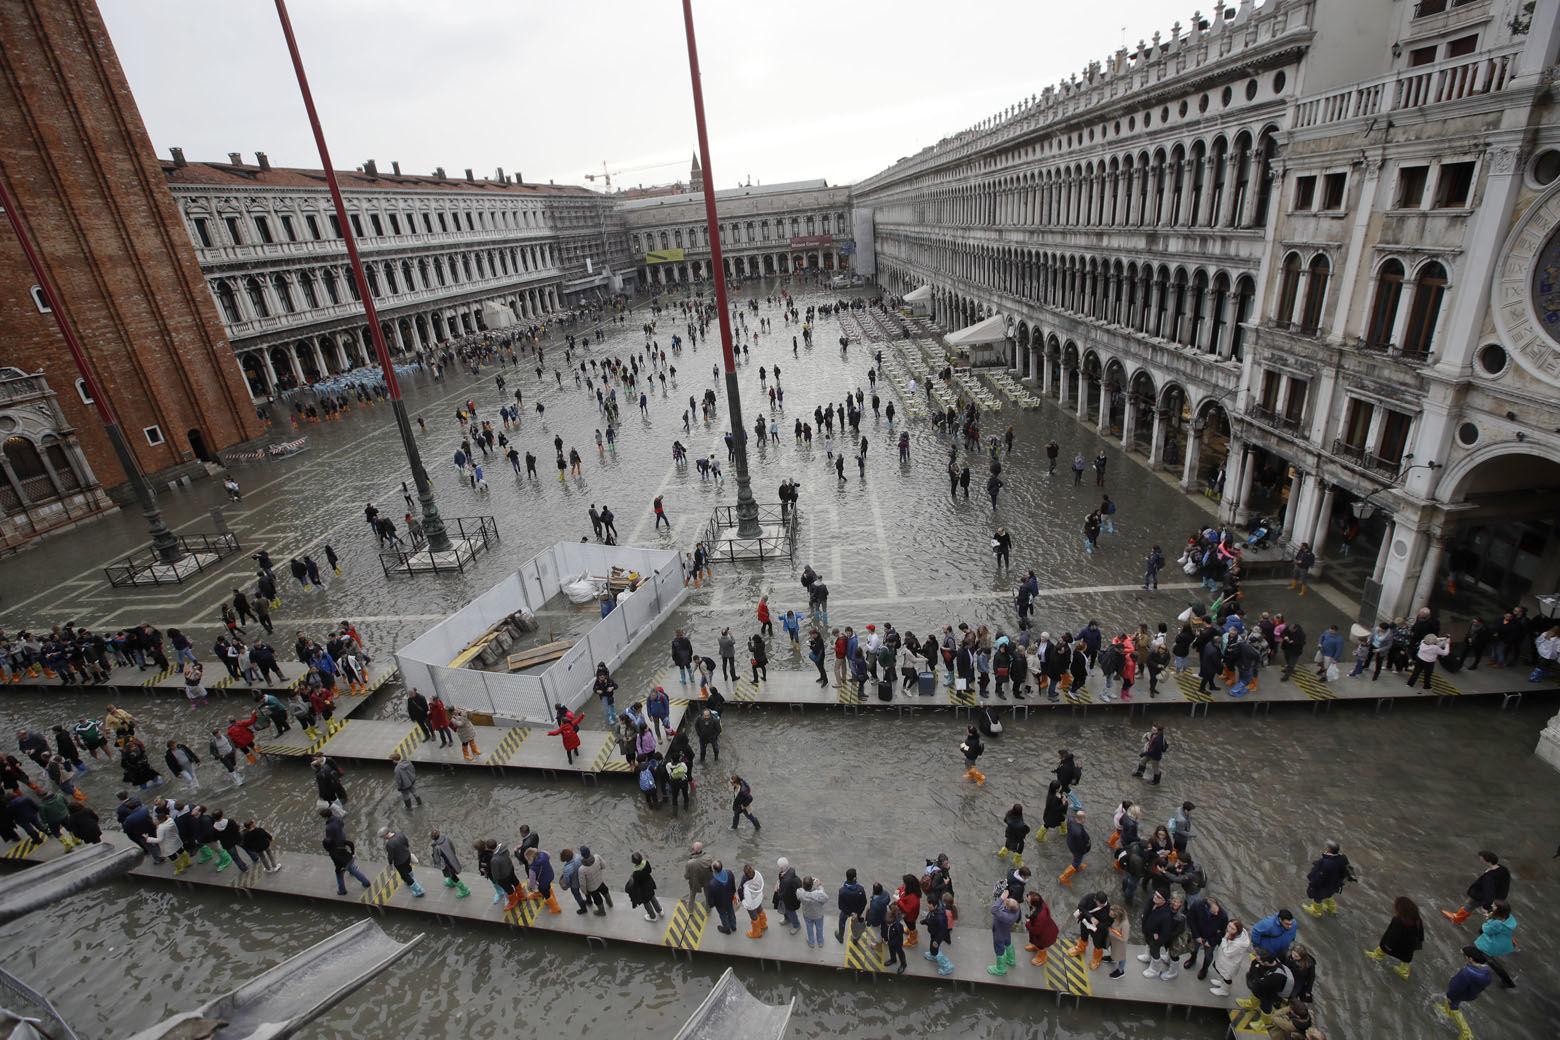 Tourists cross flooded St. Mark's Square in Venice, Italy, Thursday, Nov. 1, 2018 as rainstorms and strong winds have been battering the country. Two people were killed when a falling tree crushed their car in the mountainous countryside in northwestern Italy, as rainstorms and strong winds continued to pummel much of the country. (AP Photo/Luca Bruno)